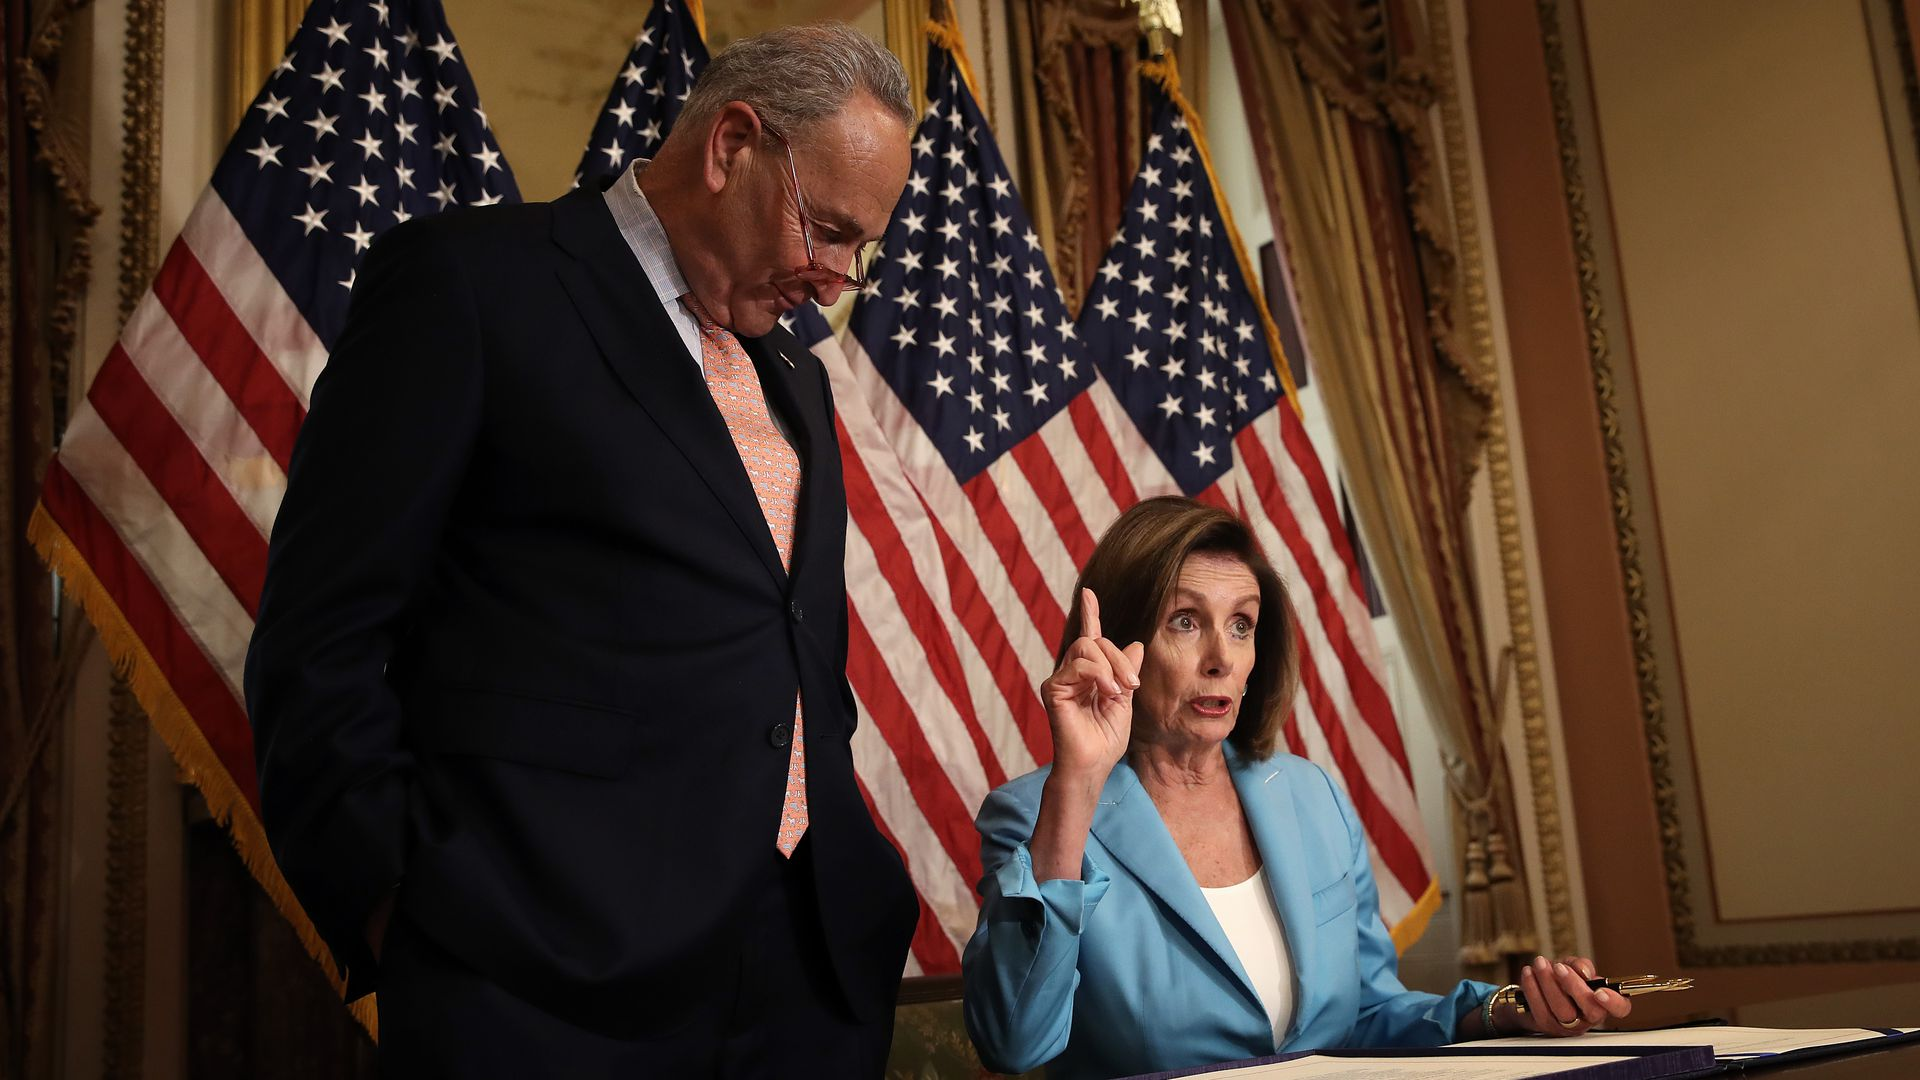 Senate Minority Leader Chuck Schumer (L) (D-NY) and Speaker of the House Nancy Pelosi (R) (D-CA) participate in a signing ceremony in Washington, DC.